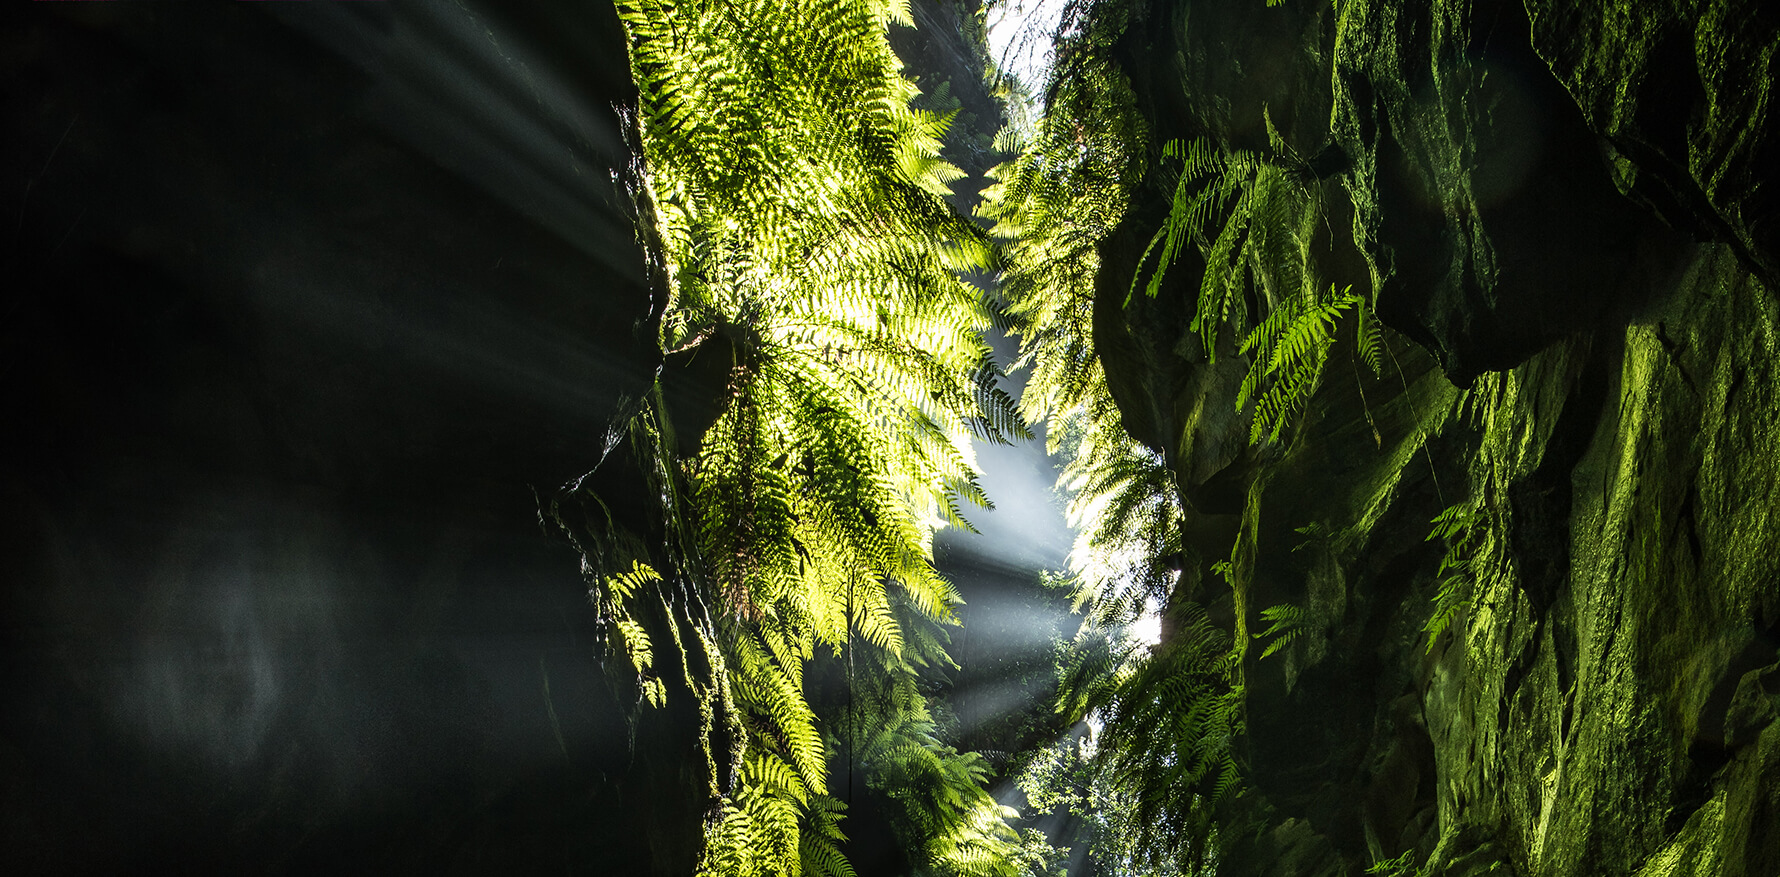 Ferns in Claustral Canyon photographed by Michael Breer will be turned to Virtual Reality experience